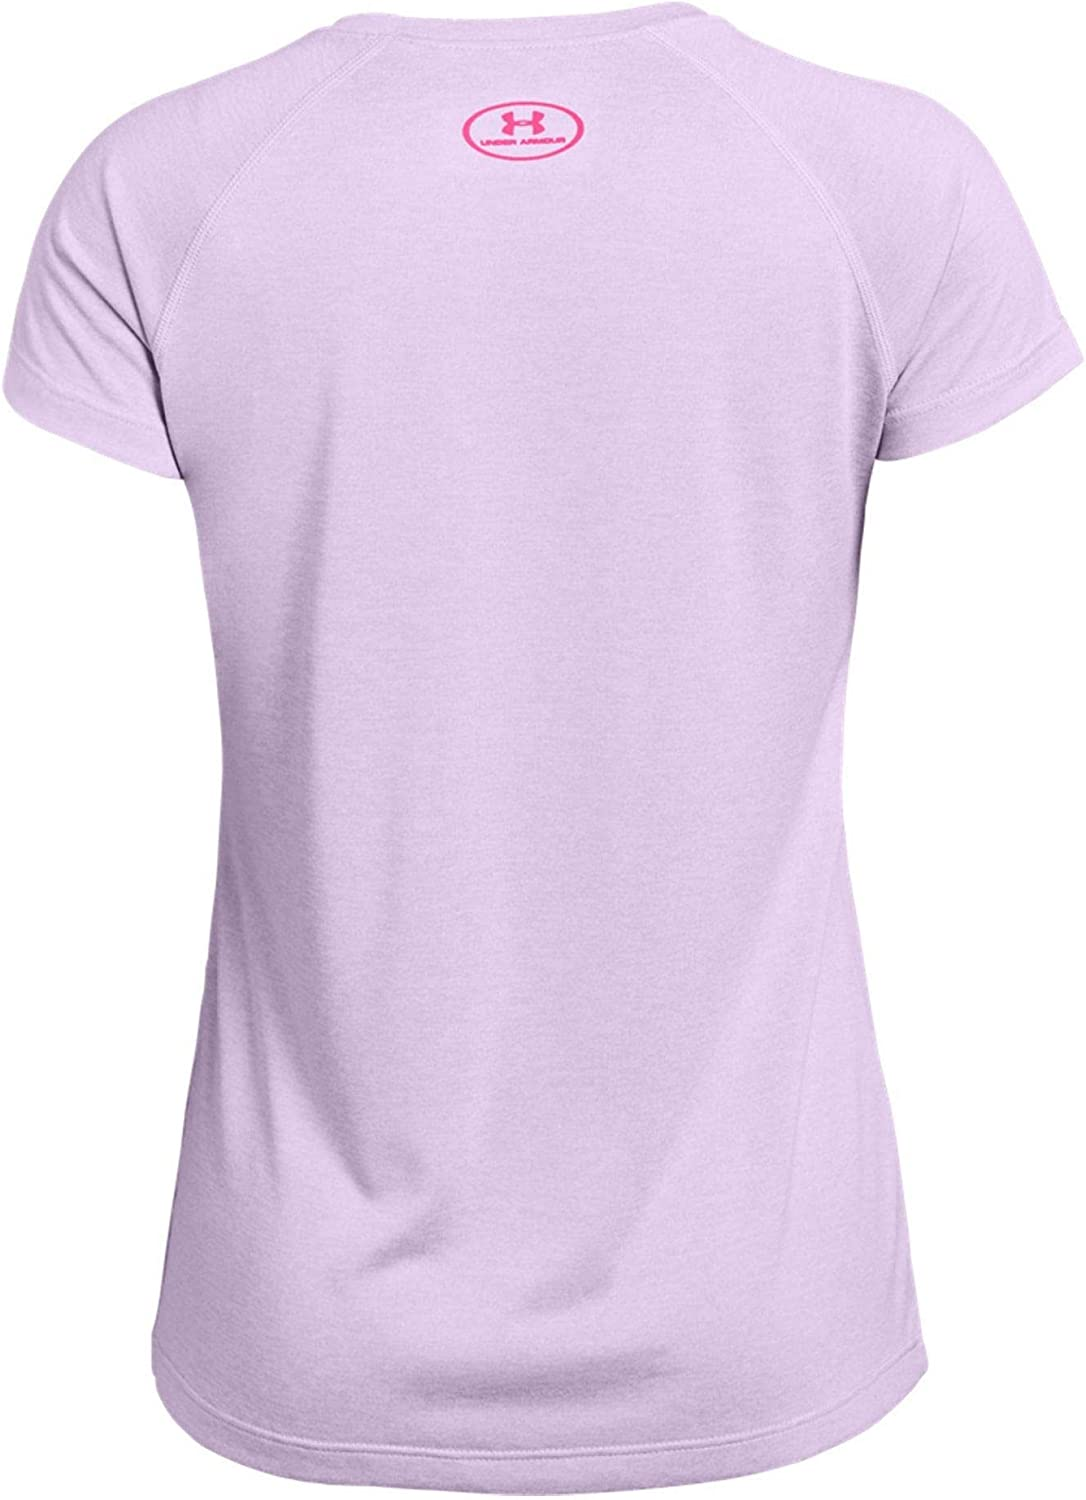 Under Armour Girls Big Logo Tee Twist Short Sleeve T-Shirt Short Sleeve